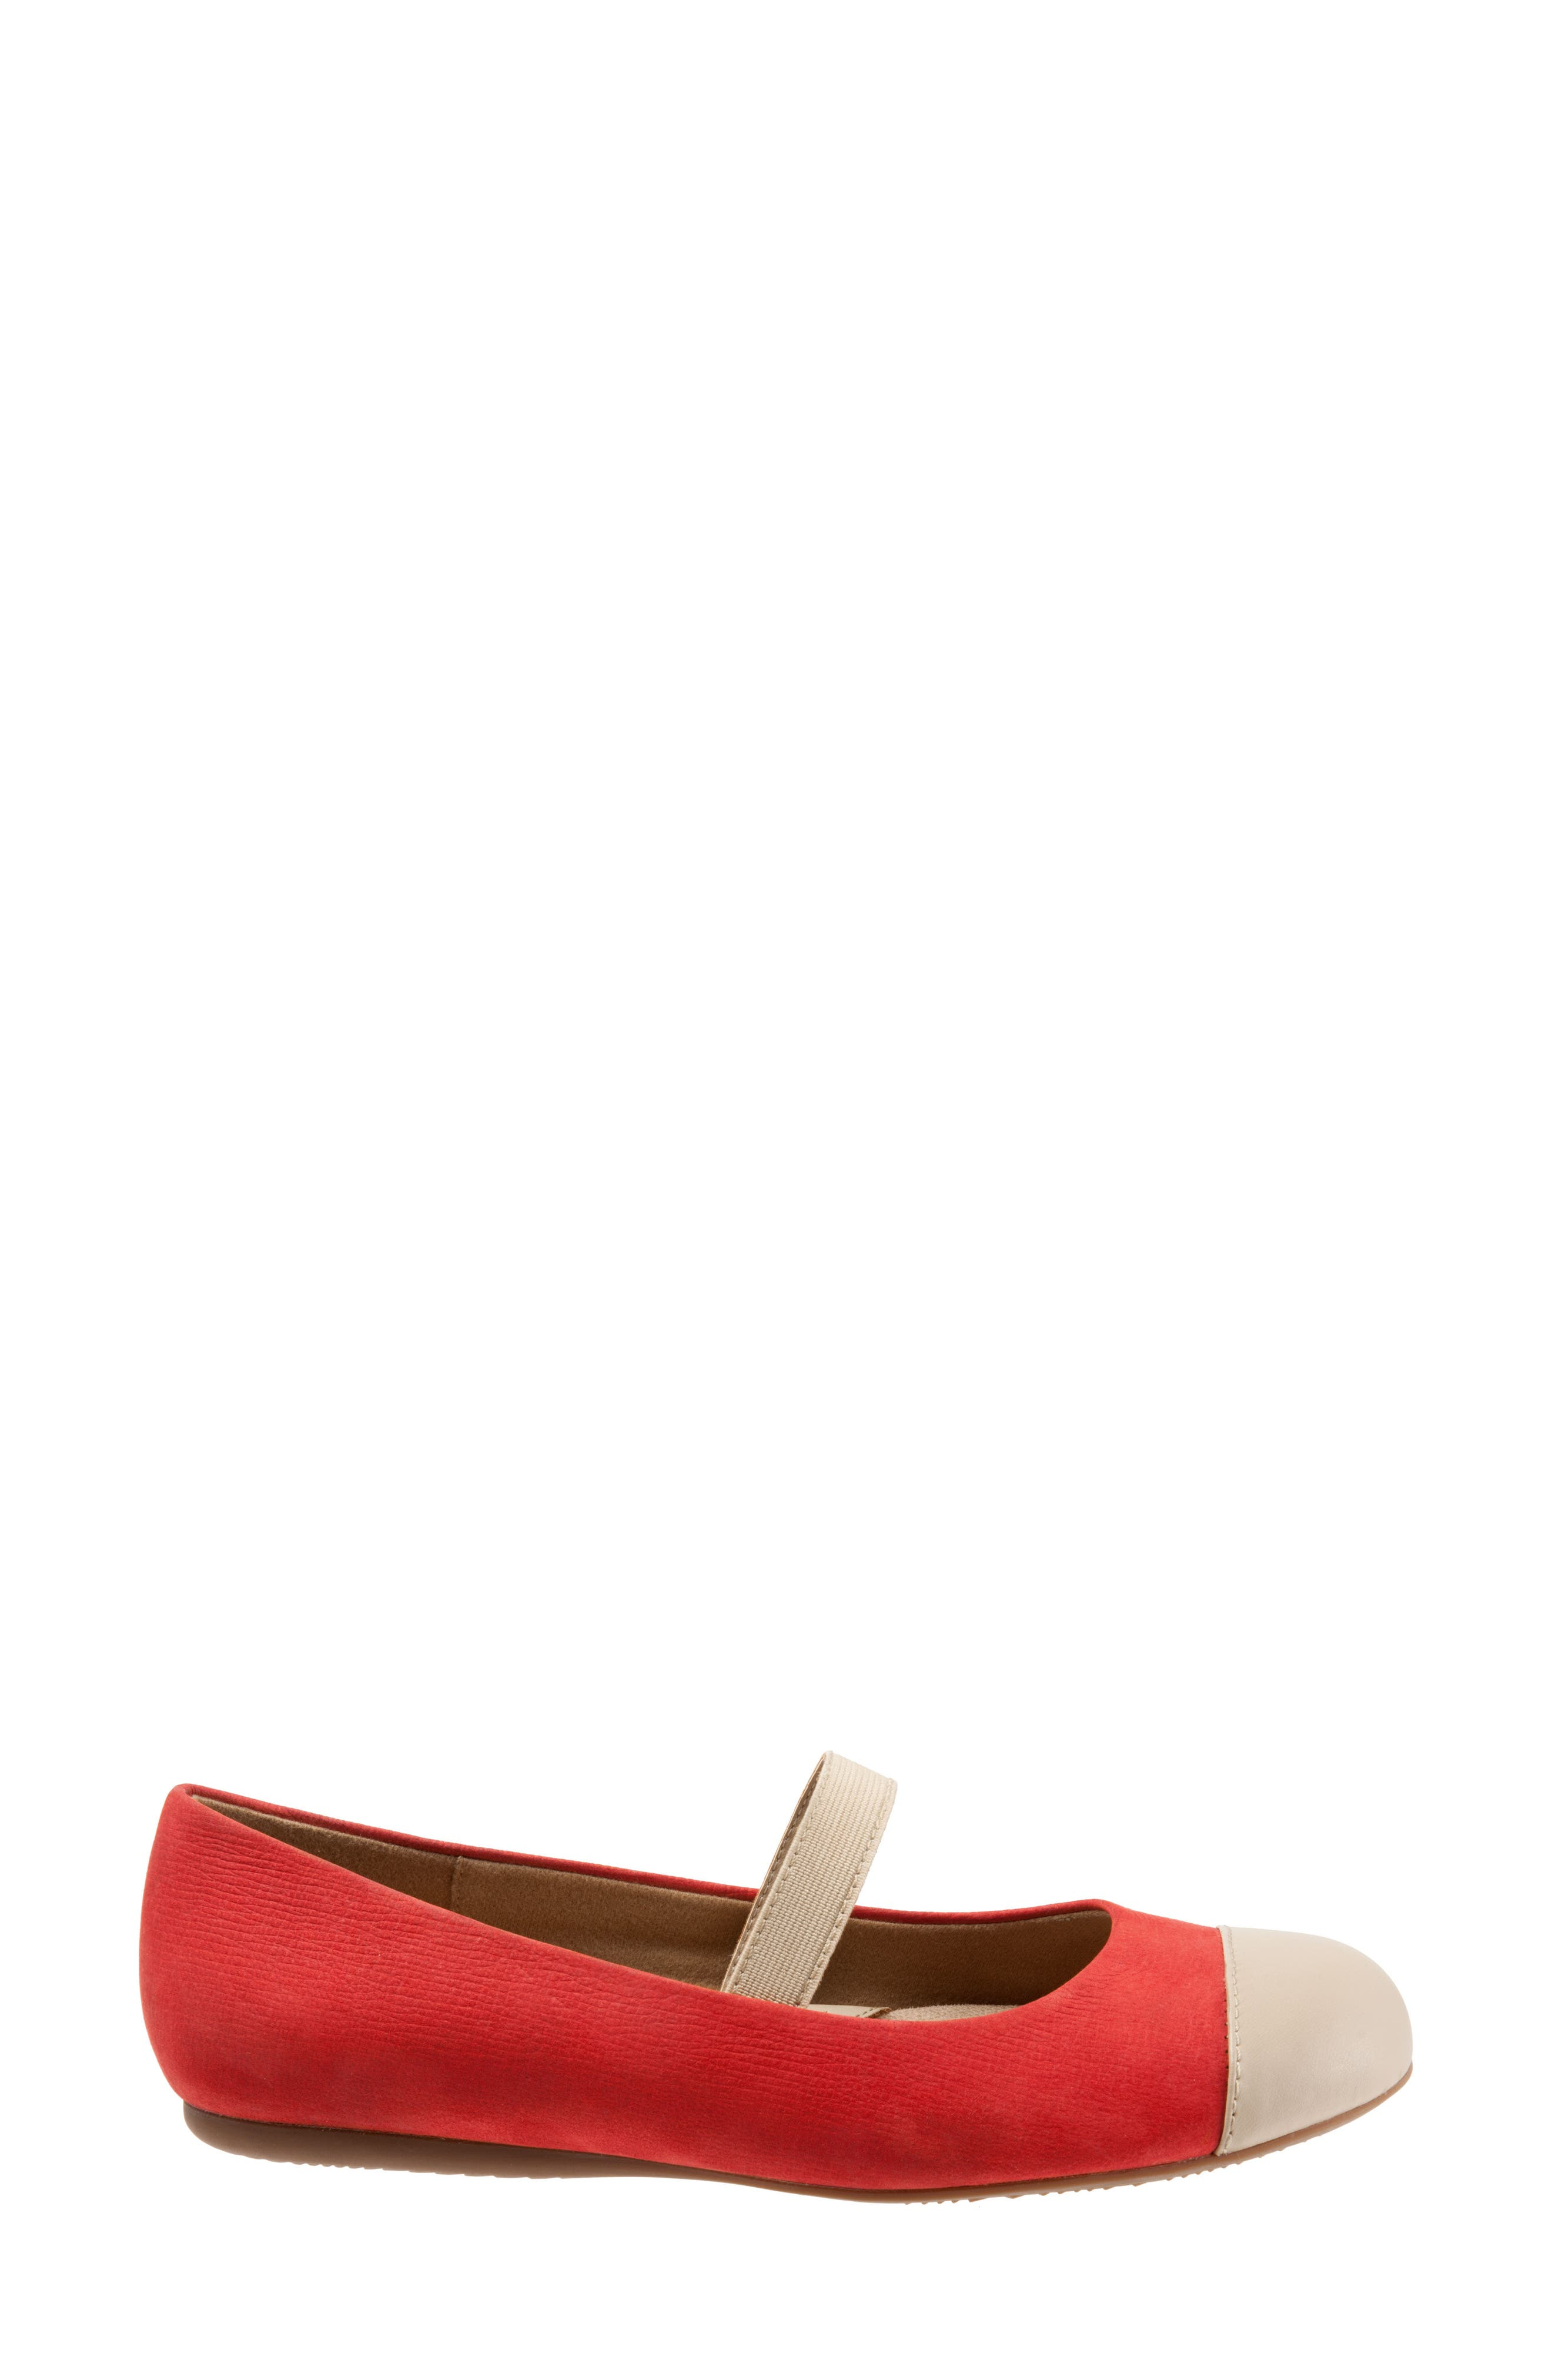 Napa Mary Jane Flat,                             Alternate thumbnail 3, color,                             Red/ Nude Leather